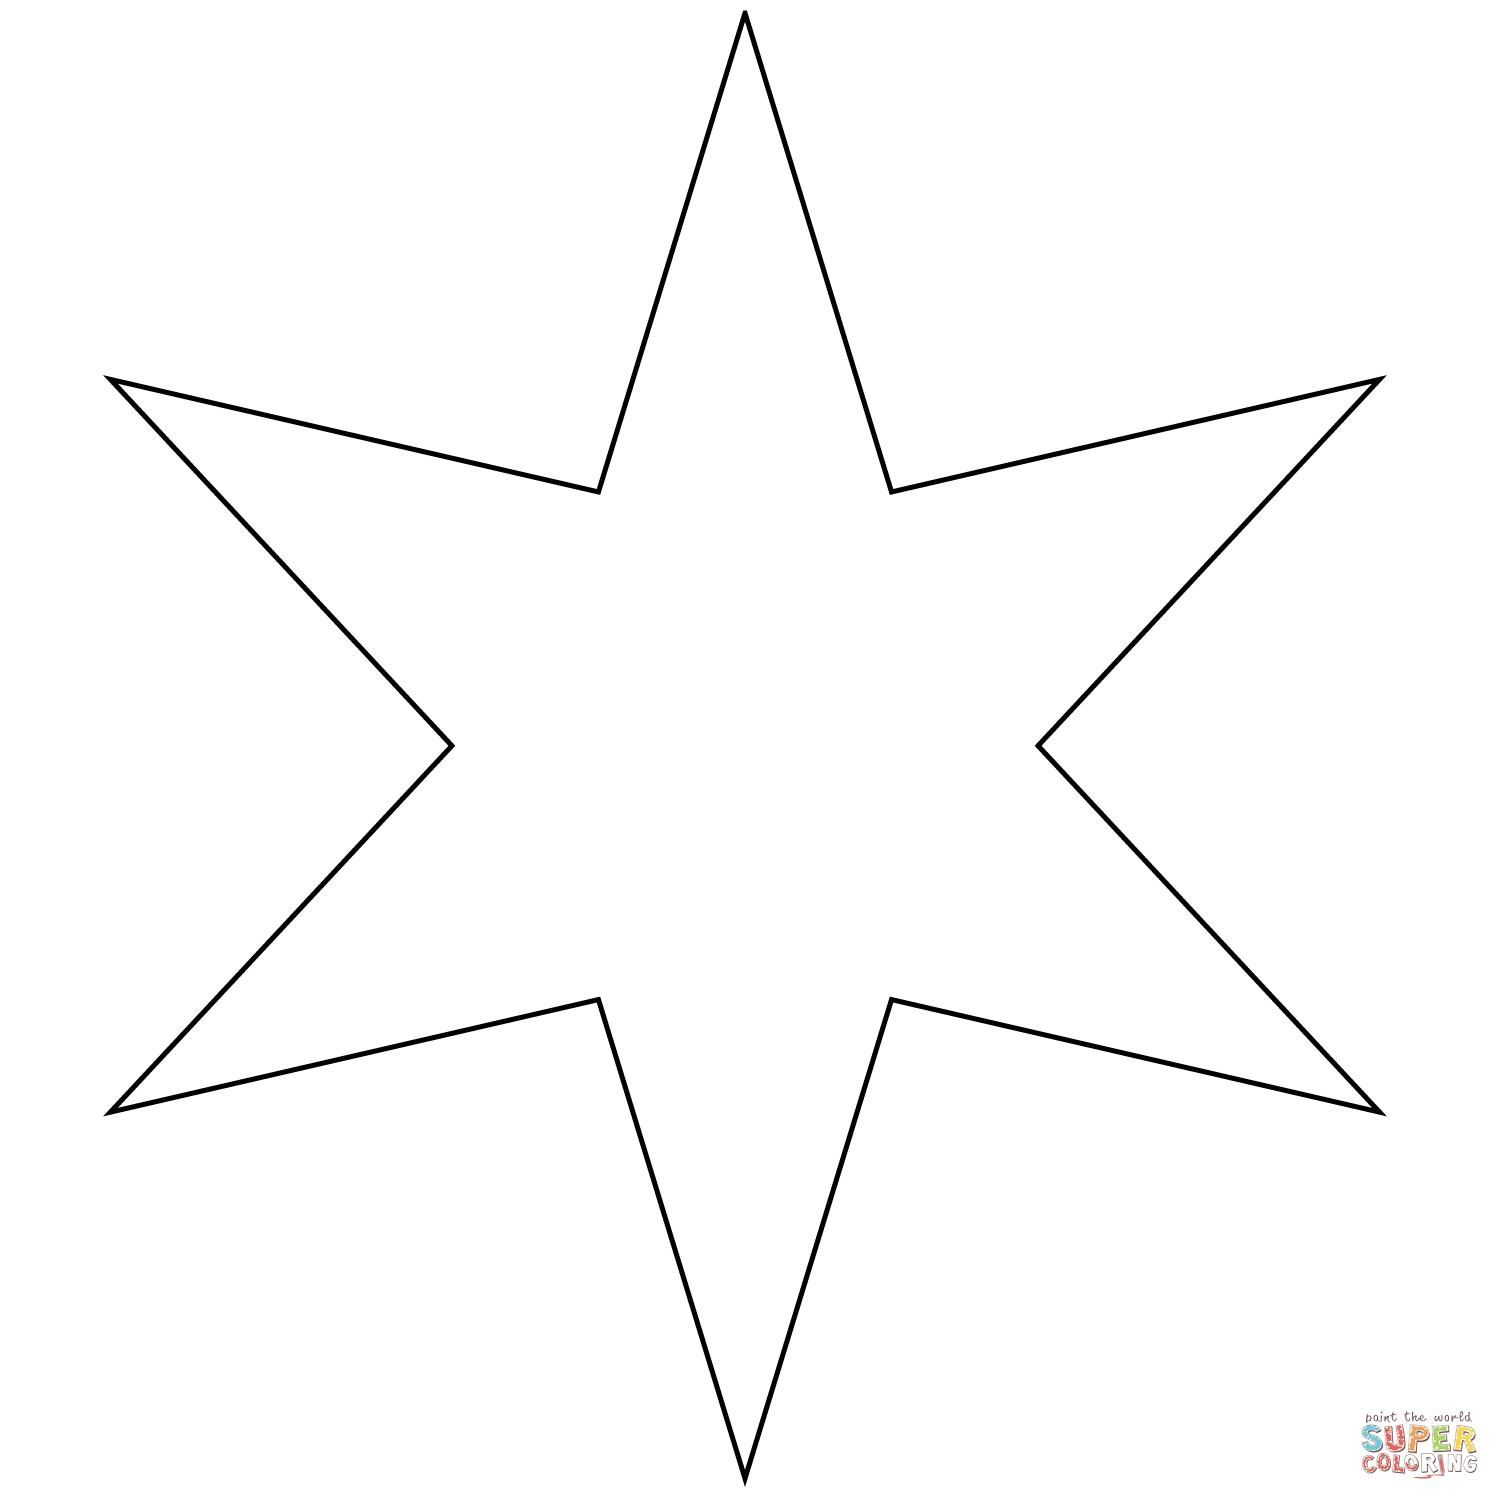 38 Coloring Page Of Star Star Coloring Pages Free Coloring Pages Shape Coloring Pages